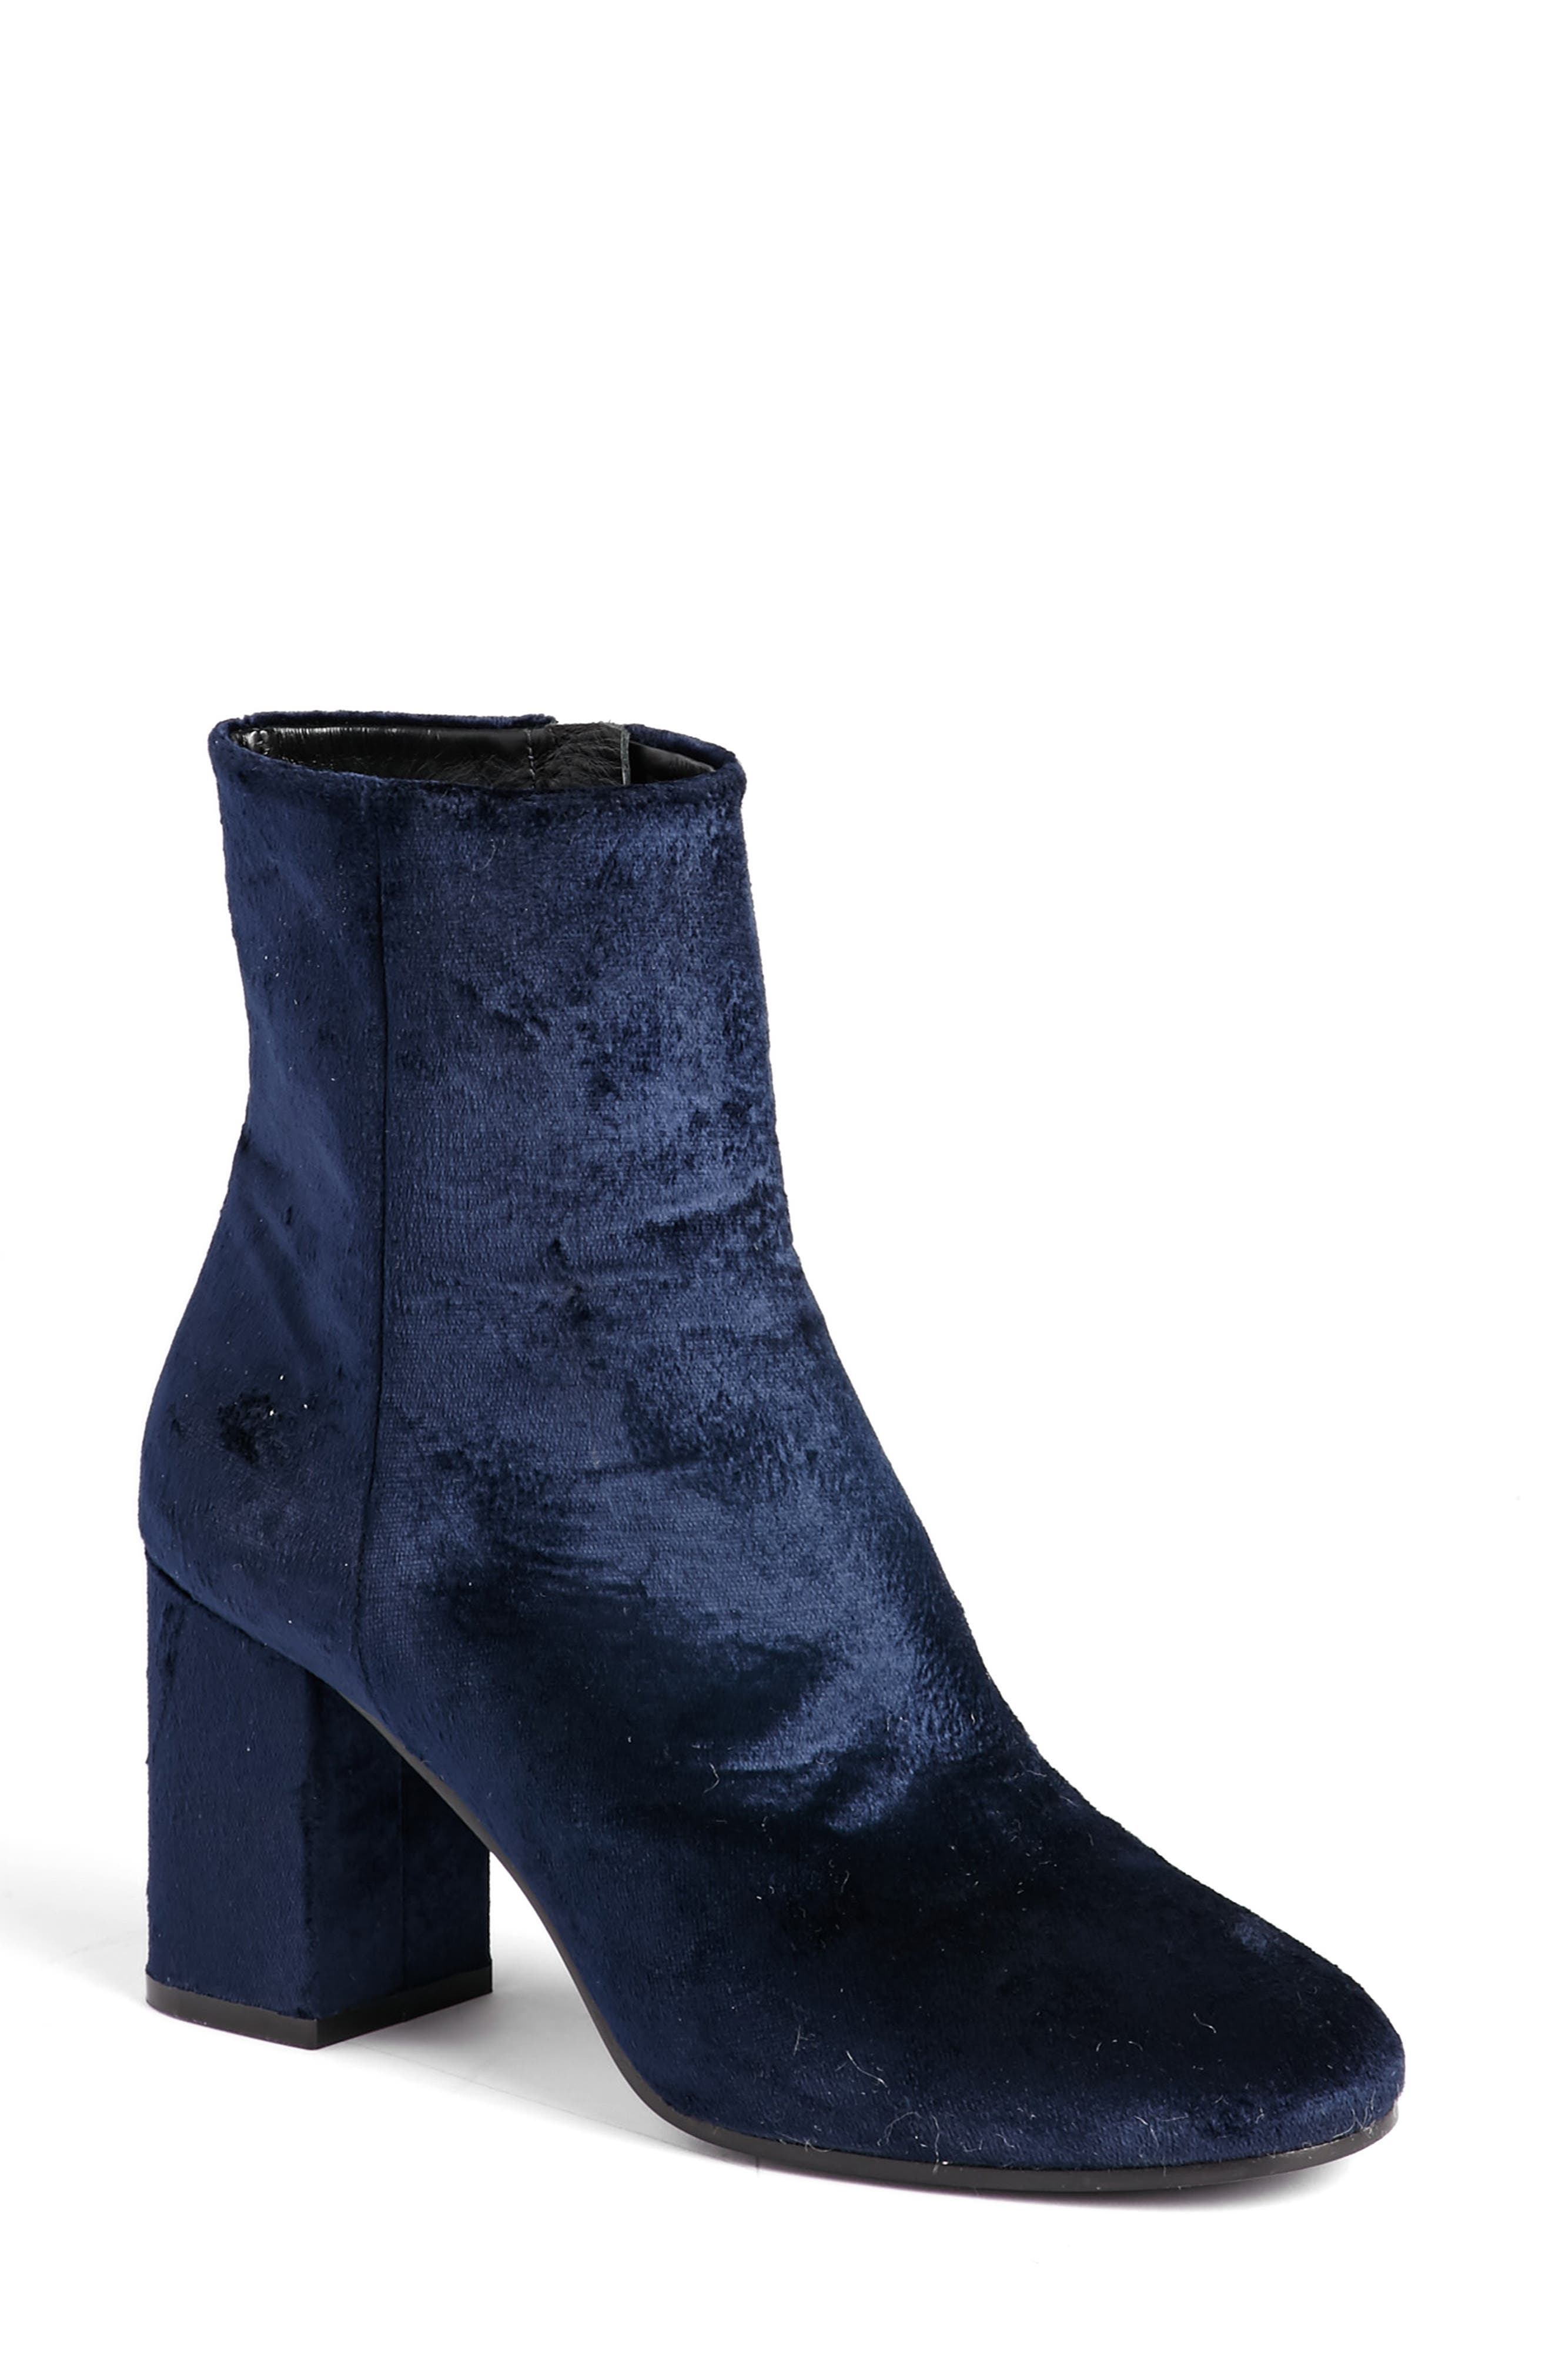 Alternate Image 1 Selected - Balenciaga Block Heel Bootie (women)